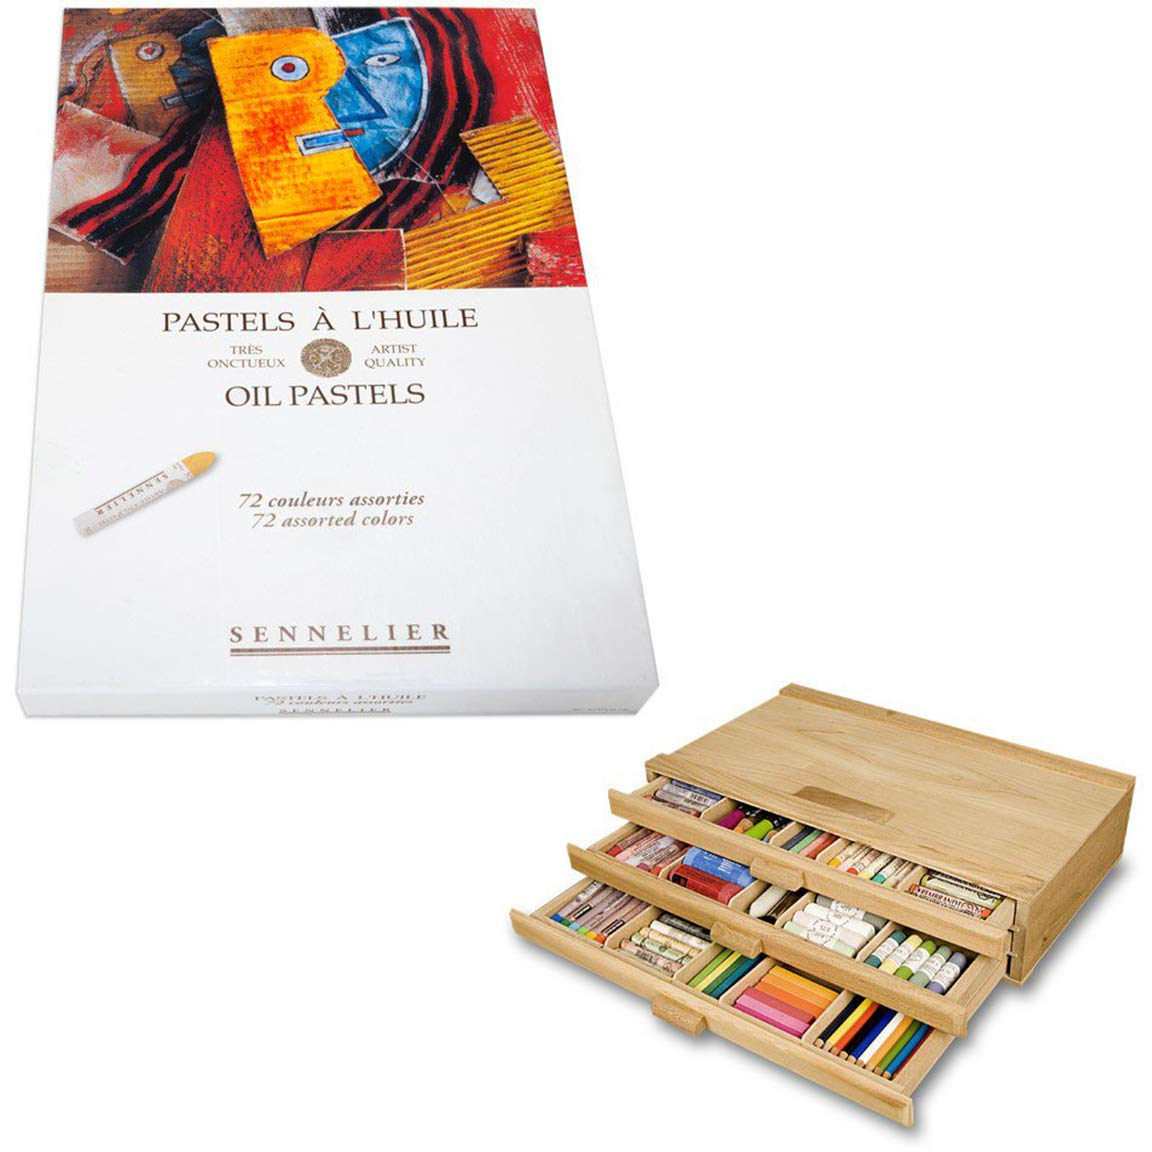 Sennelier Pastels Art Gift Set & 3 Drawer Wood Pastel Storage Box - Sennelier Oil Pastel Assorted Colors - Set of 72